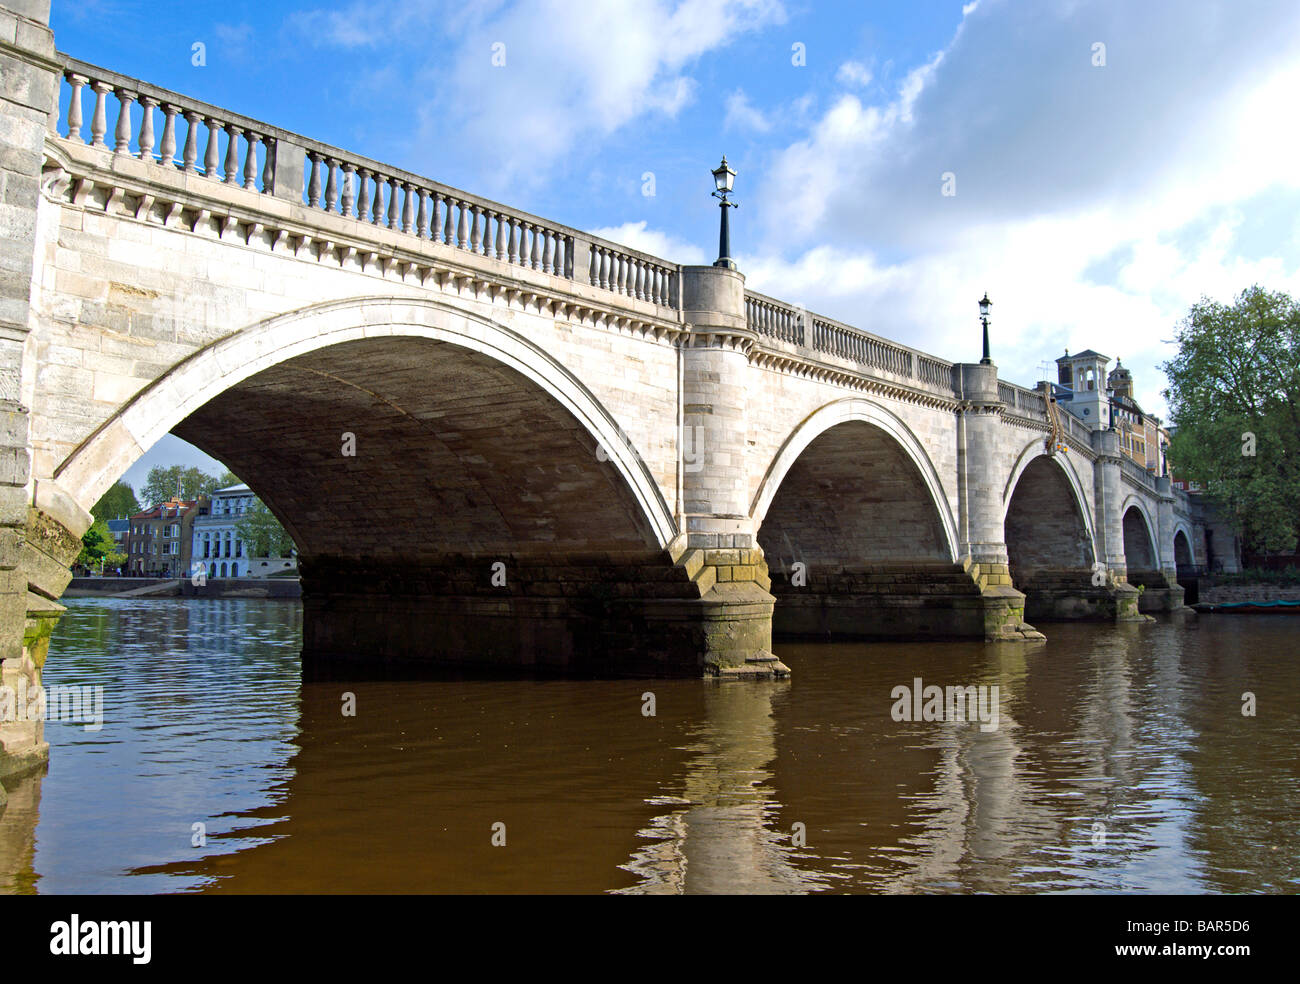 Richmond-Brücke über die Themse in Richmond nach Themse, Surrey, england Stockbild